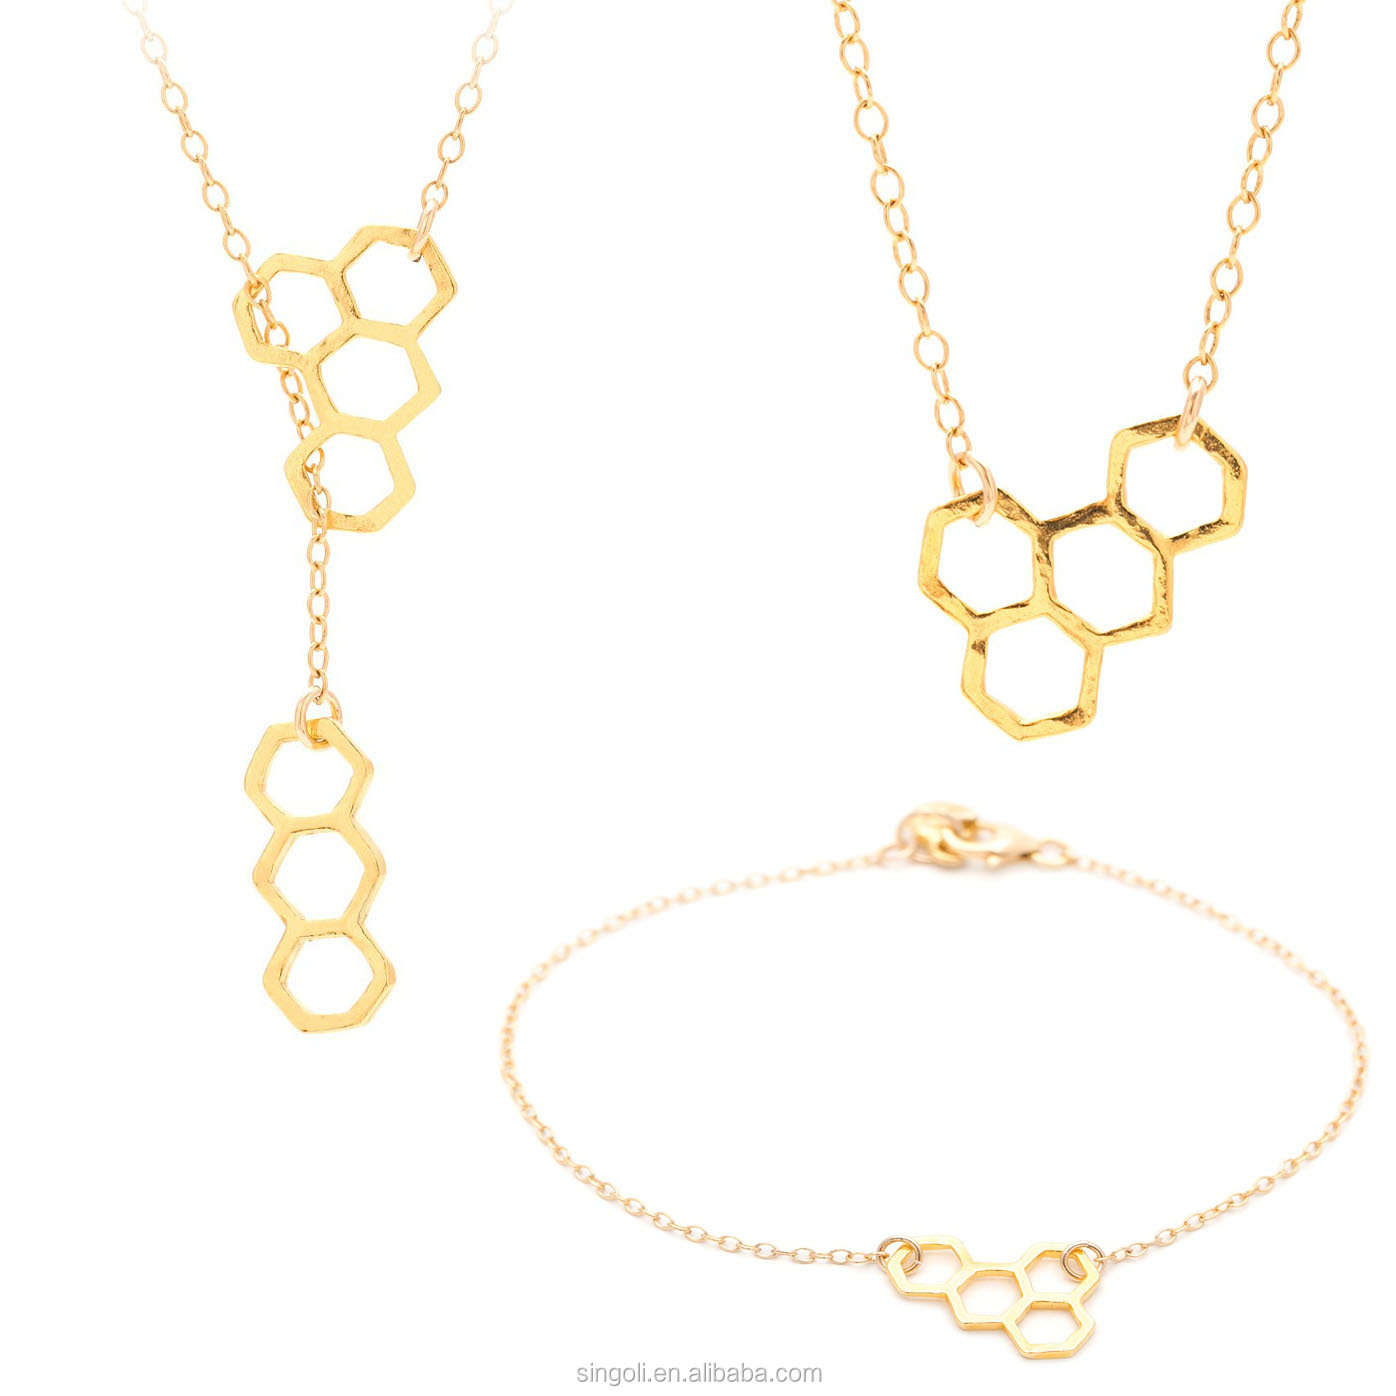 wholesale gold plated Caffeine honeycomb lariat jewelry necklace ad bracelet